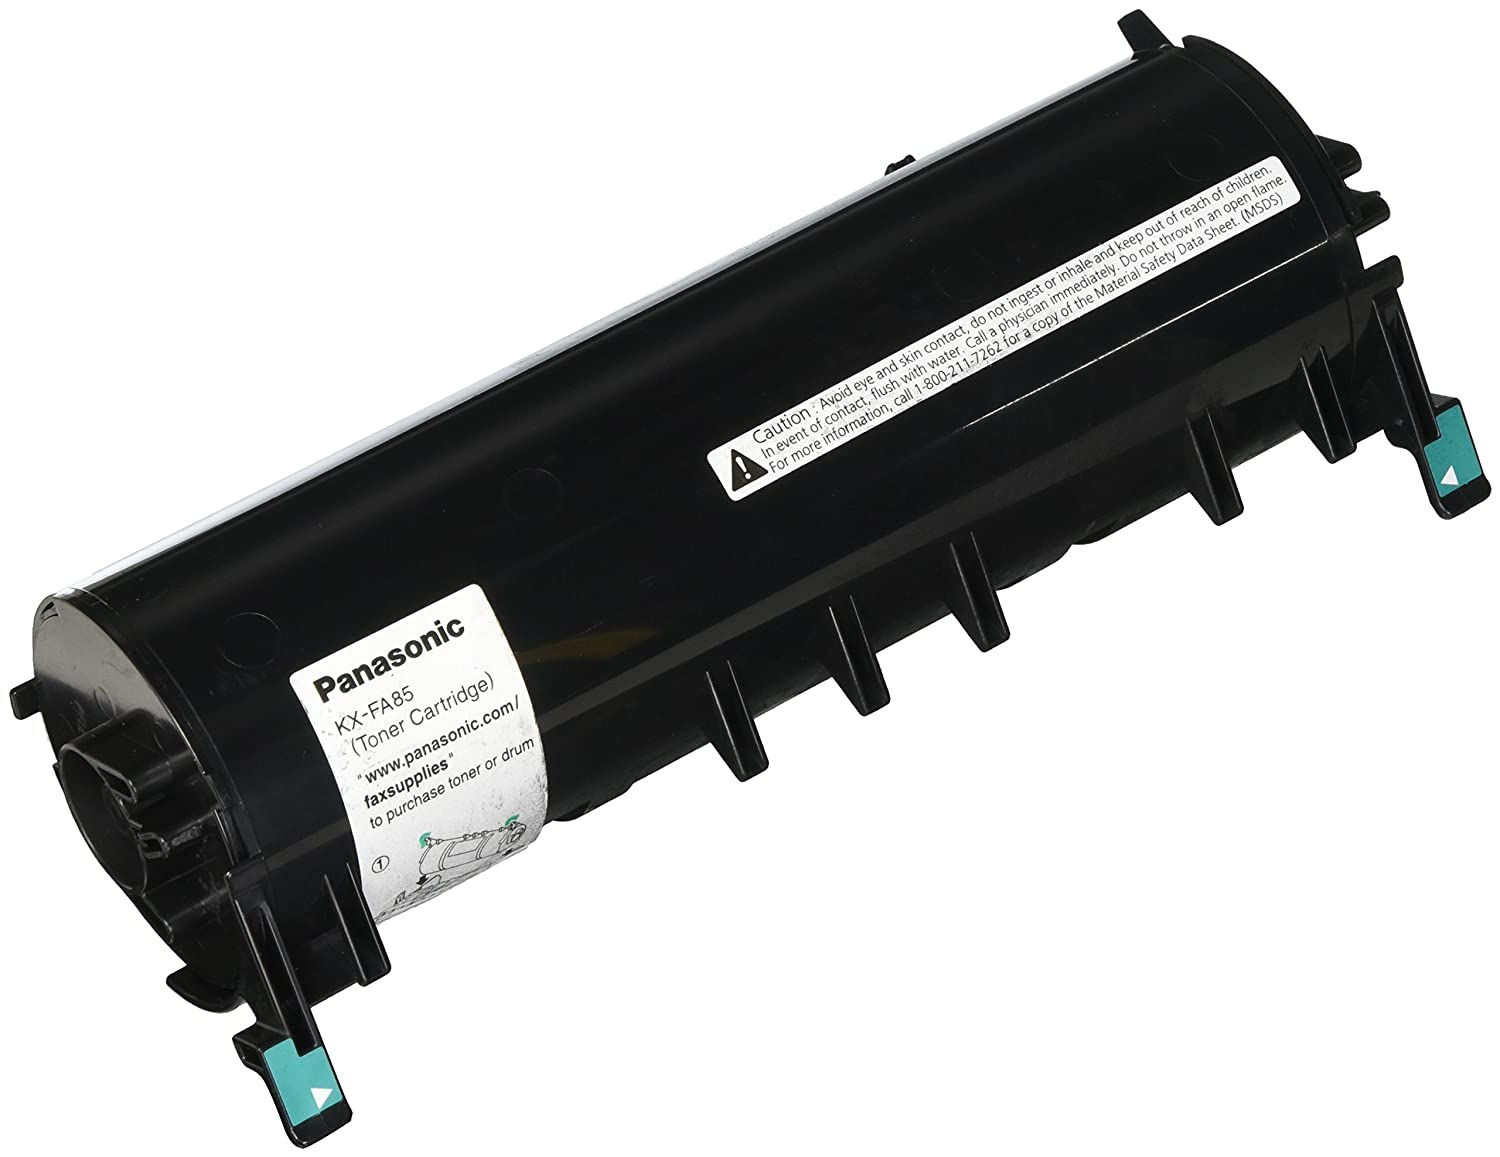 Panasonic KX-FA85 Toner Cartridge for KX-FLB800 Series fax machines